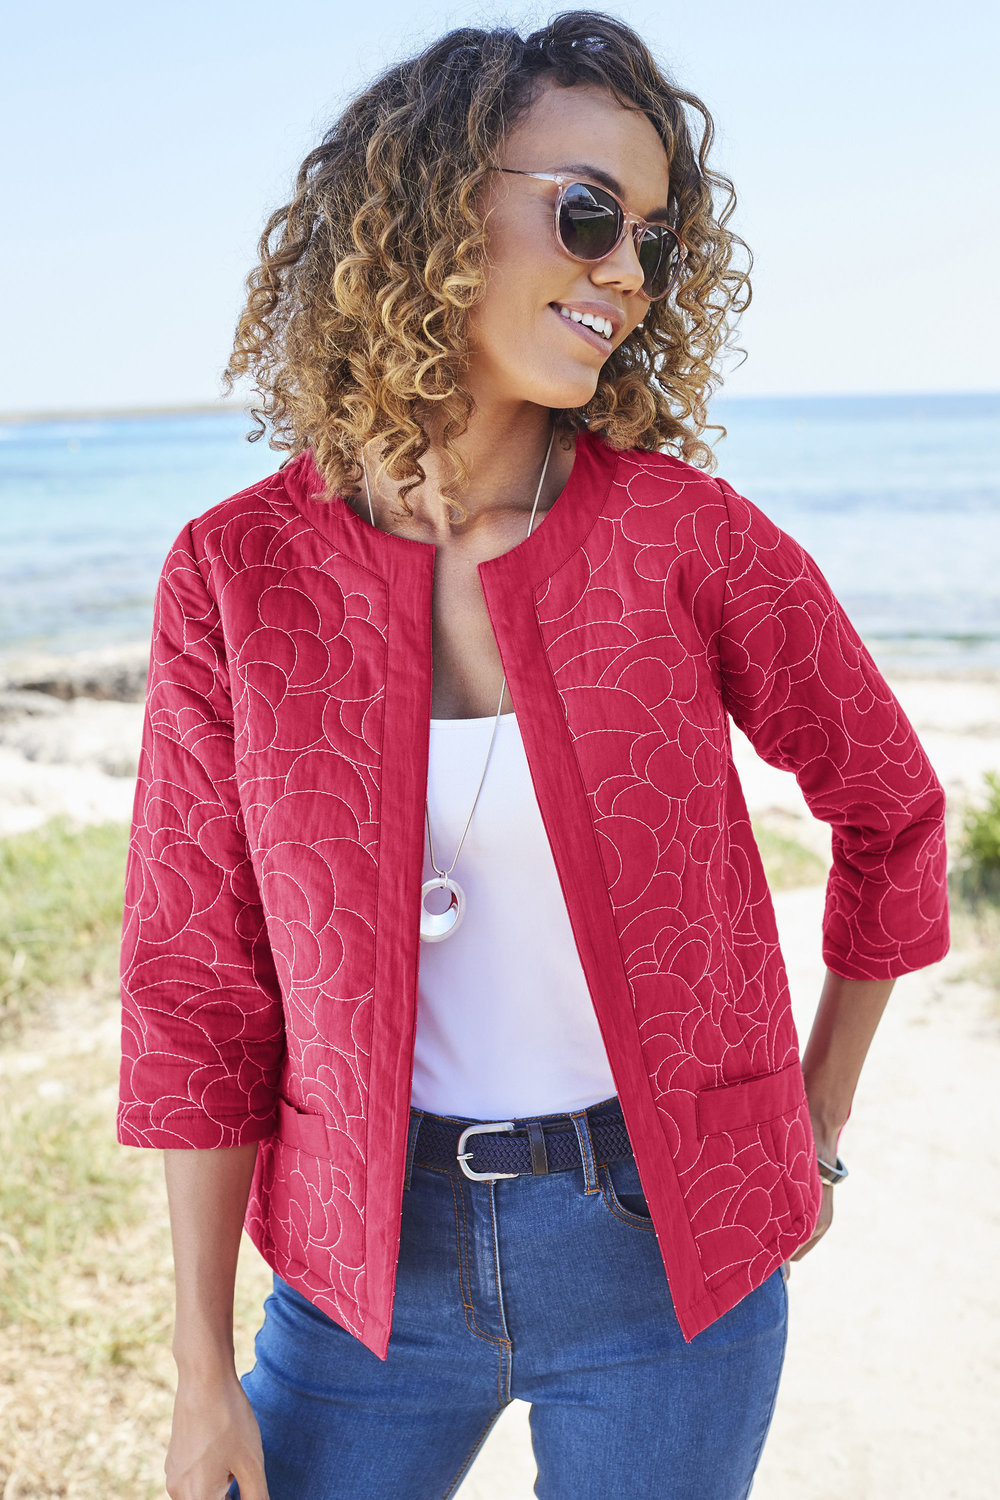 8. Cotton Traders Red Coral Embroidered Quilted Jacket